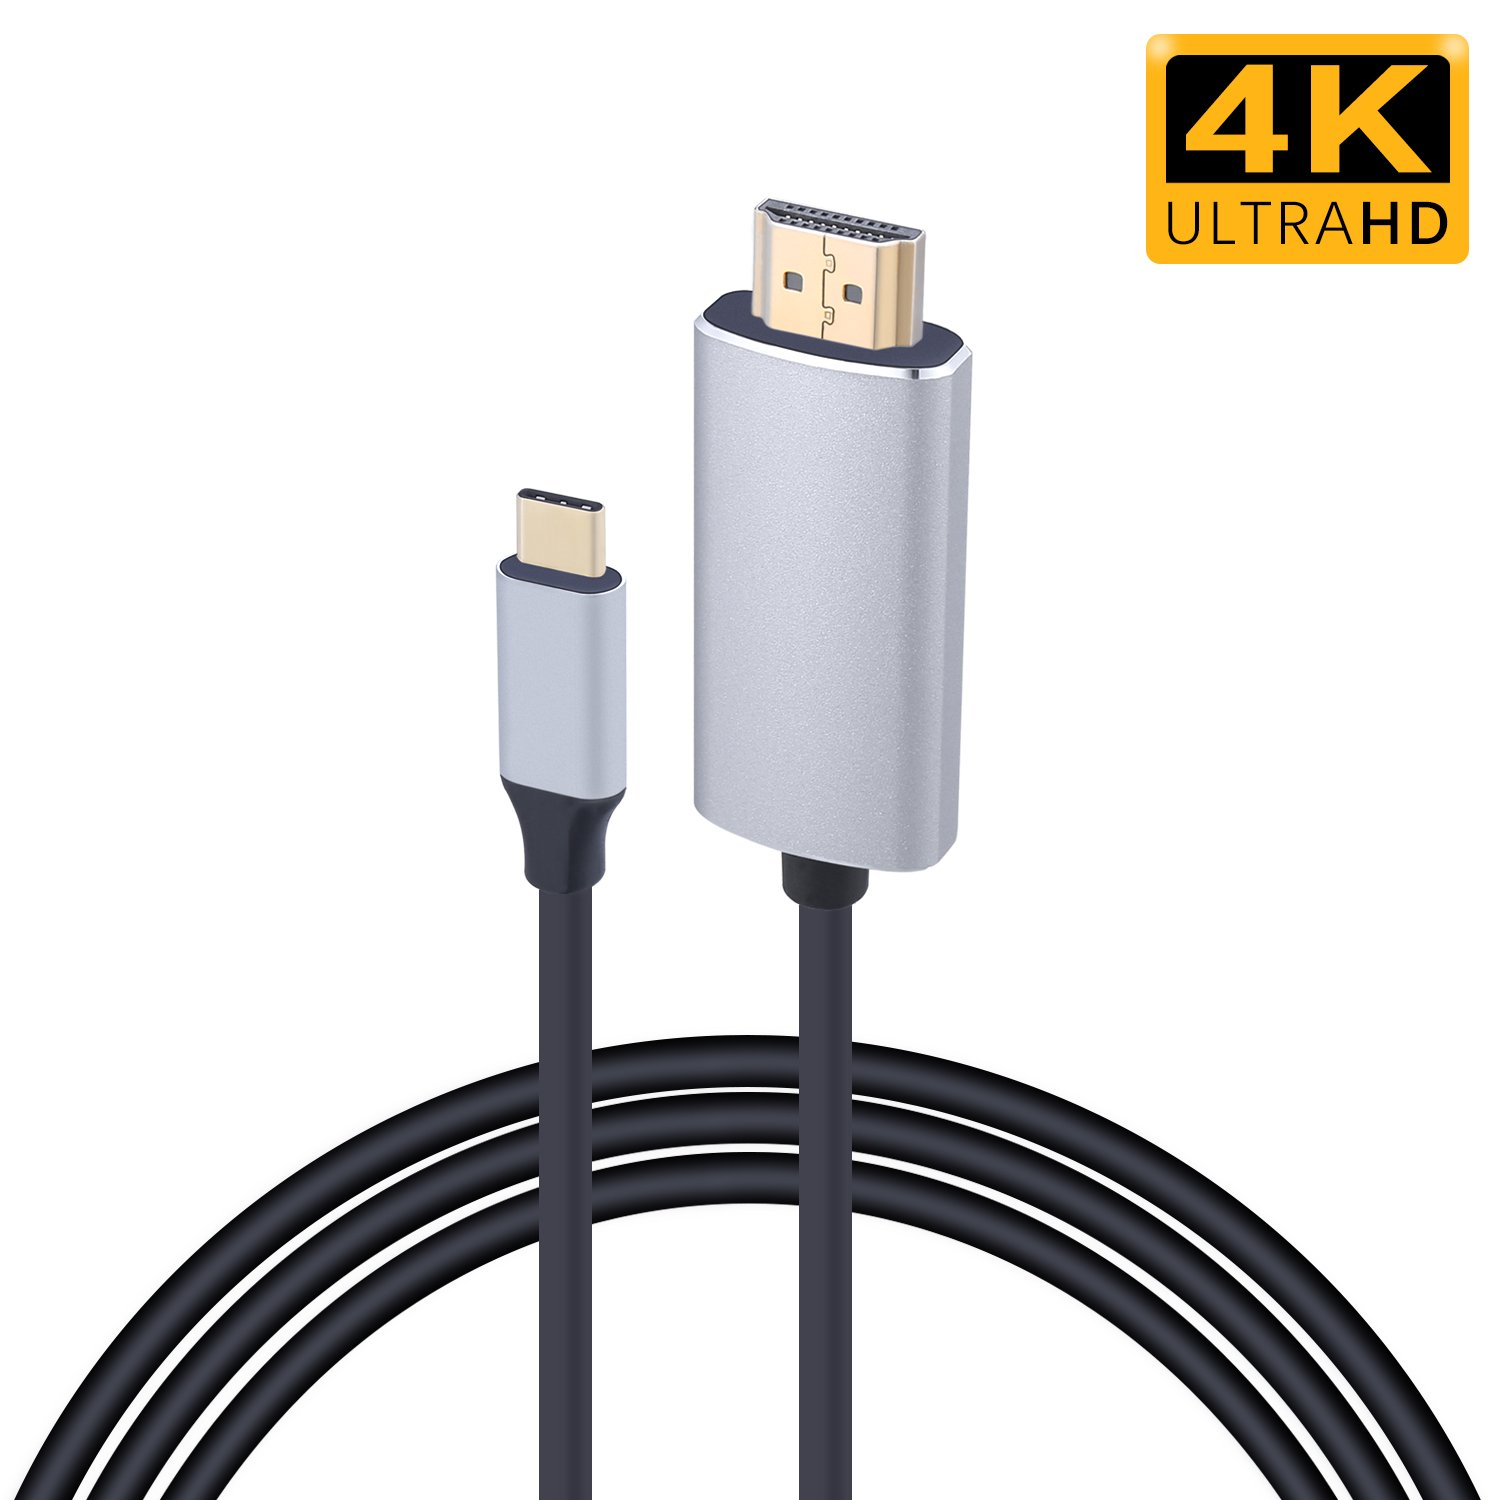 USB C to HDMI Sikeda 4K@60HZ USB Type C to HDMI Cable Adapter (Compatible with Thunderbolt 3) for 2017/2016 Macbook Pro, 2017 iMac, Galaxy S8/S8+, LG G5, Google Chromebook Pixel, TV/Monitor